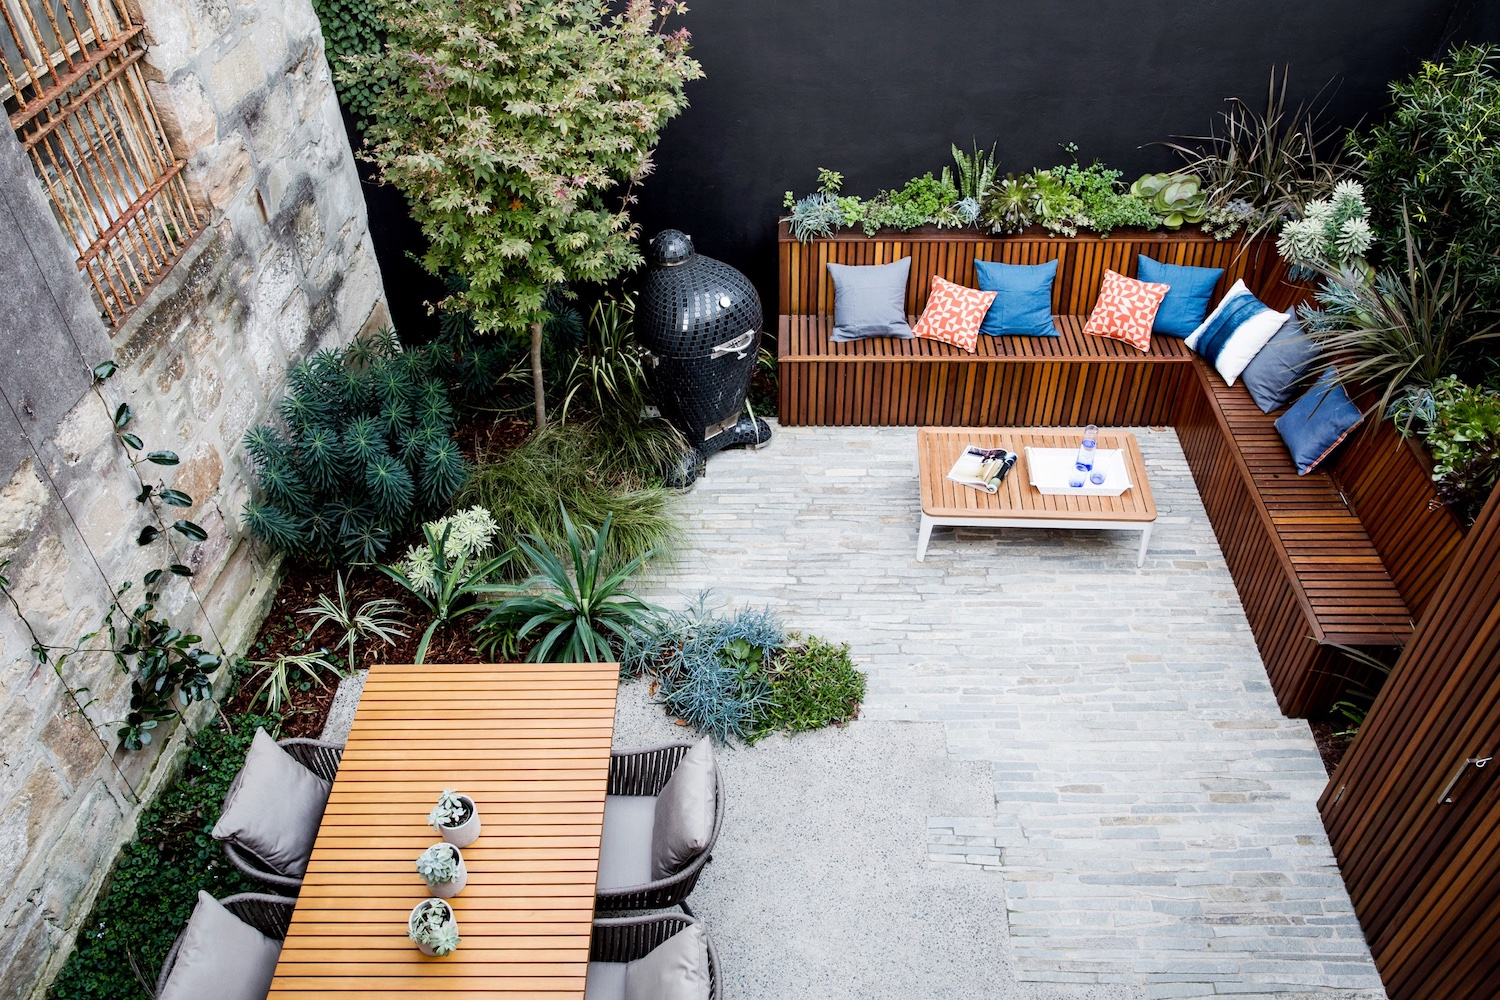 Space for plenty to gather outdoors in this garden courtyard